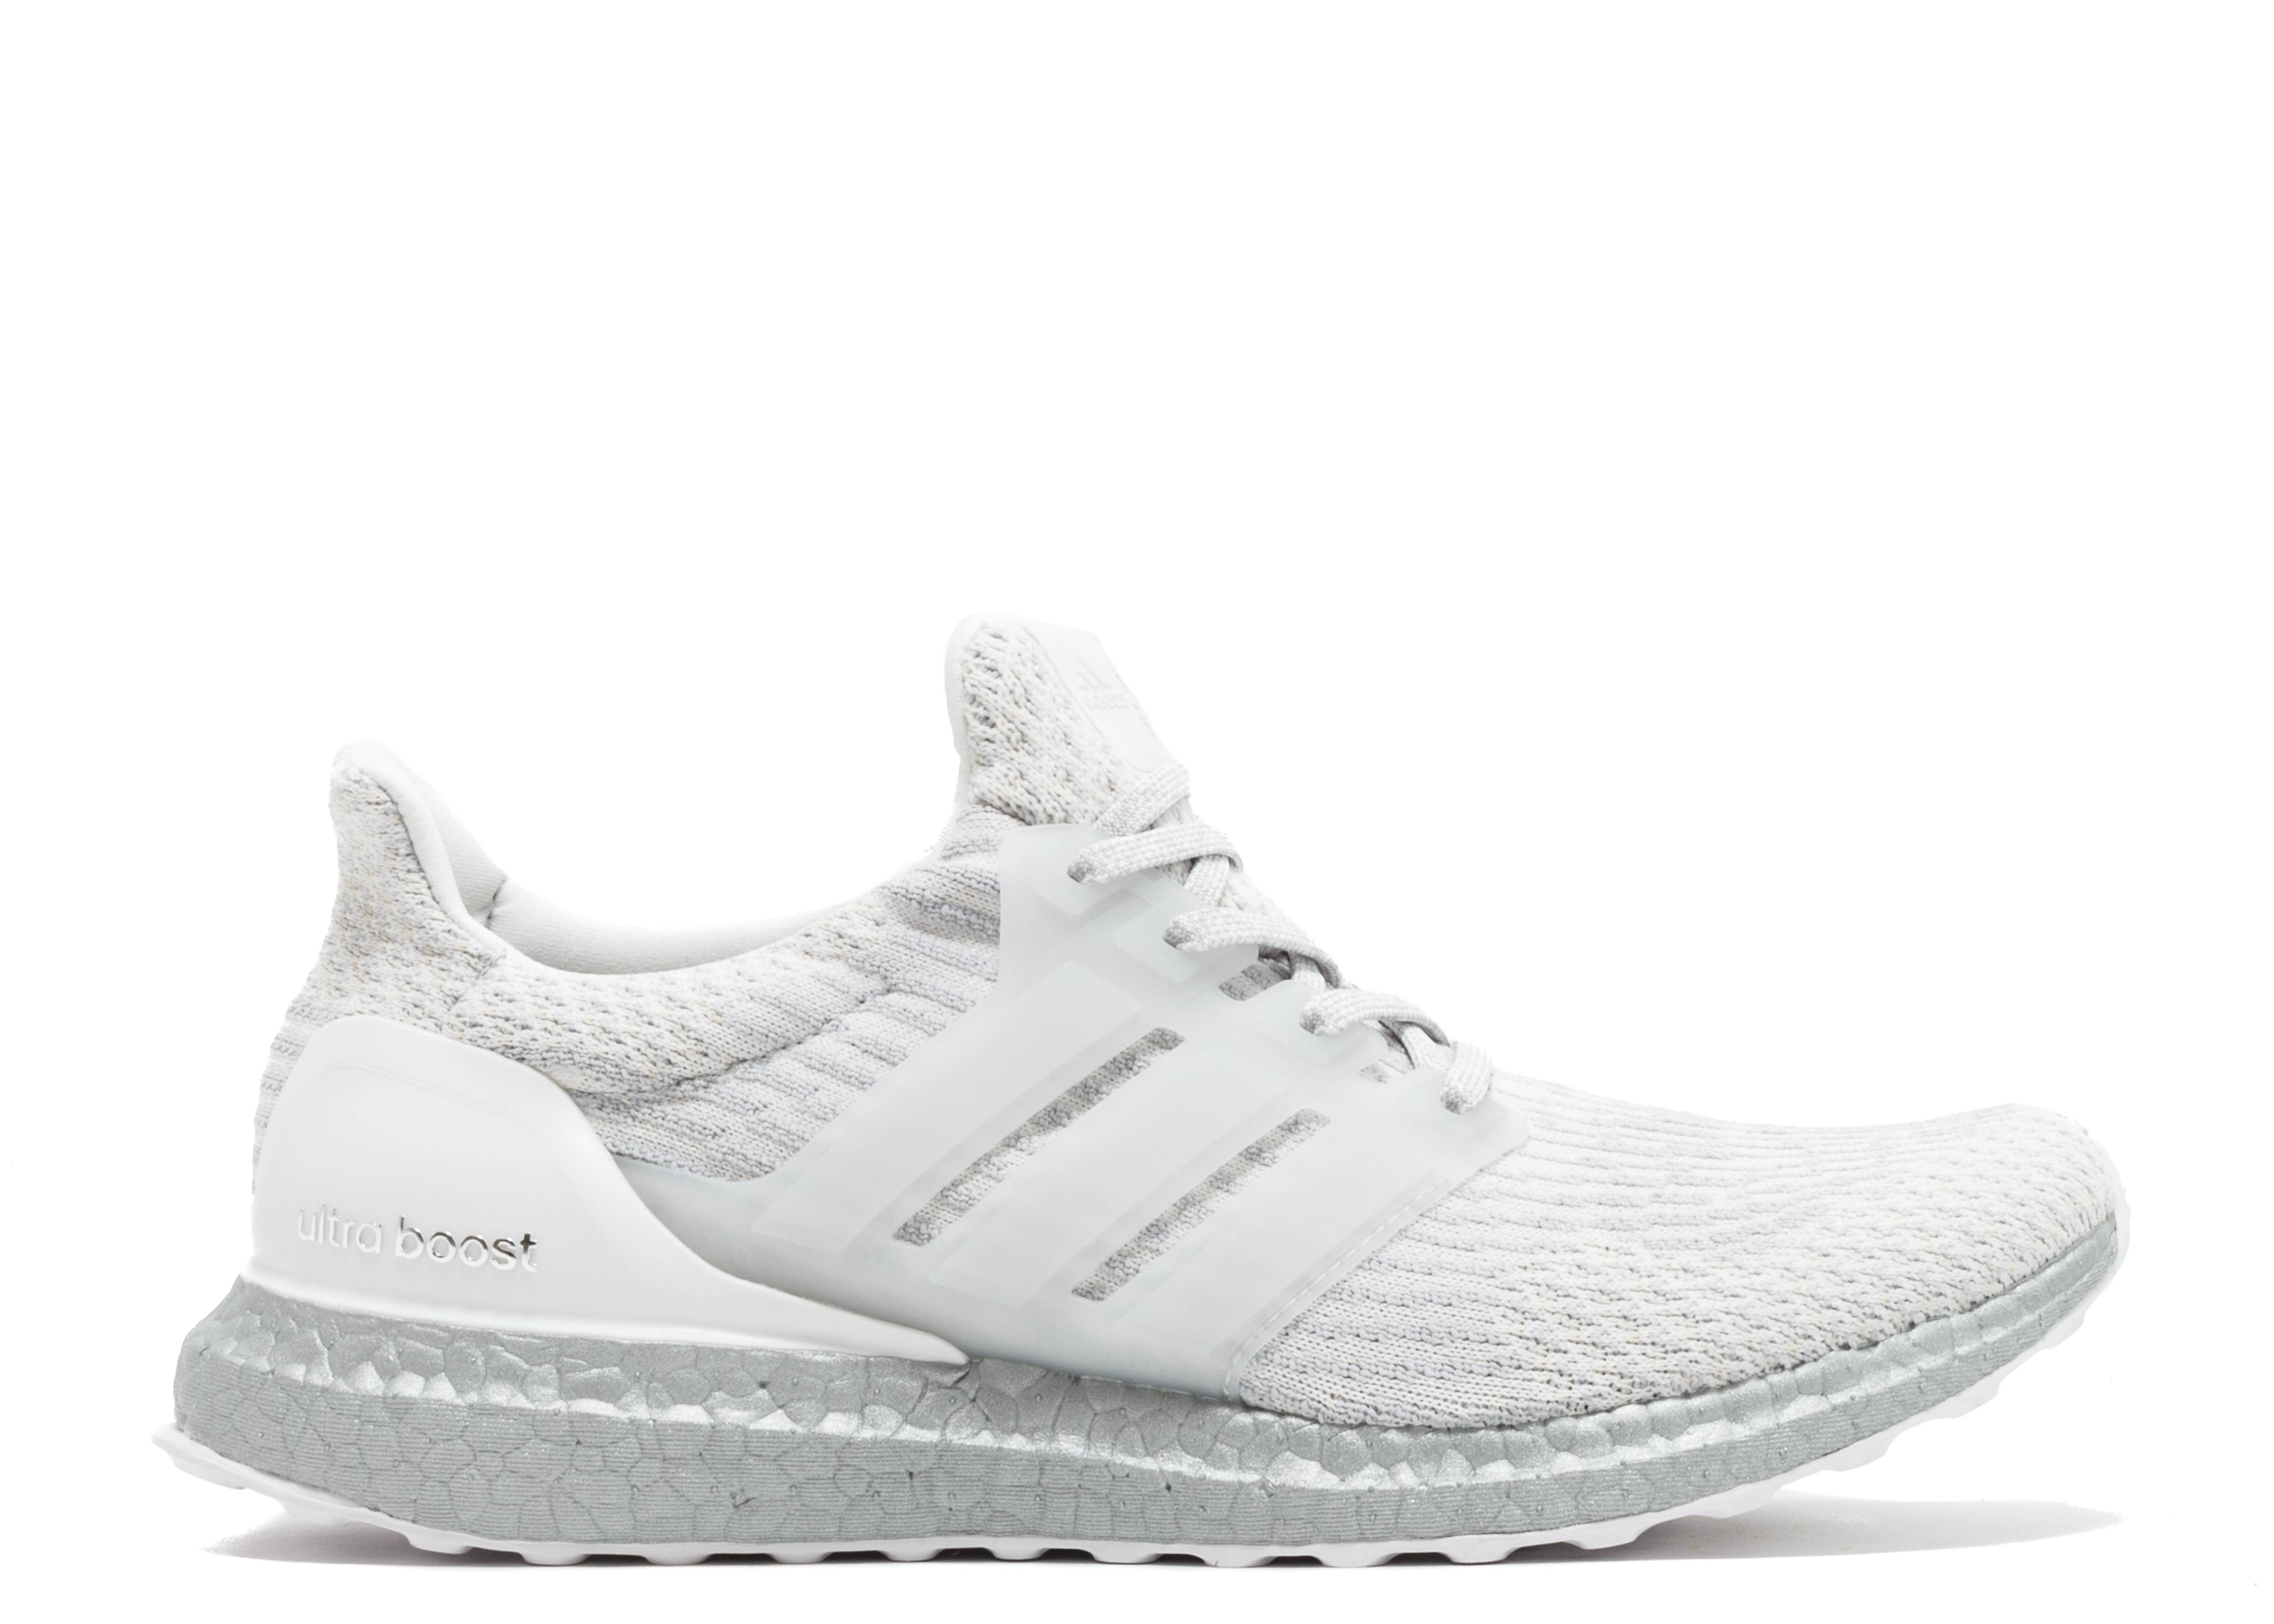 bcfd32cd696 UltraBoost - Adidas - ba8922 - white   white-light grey